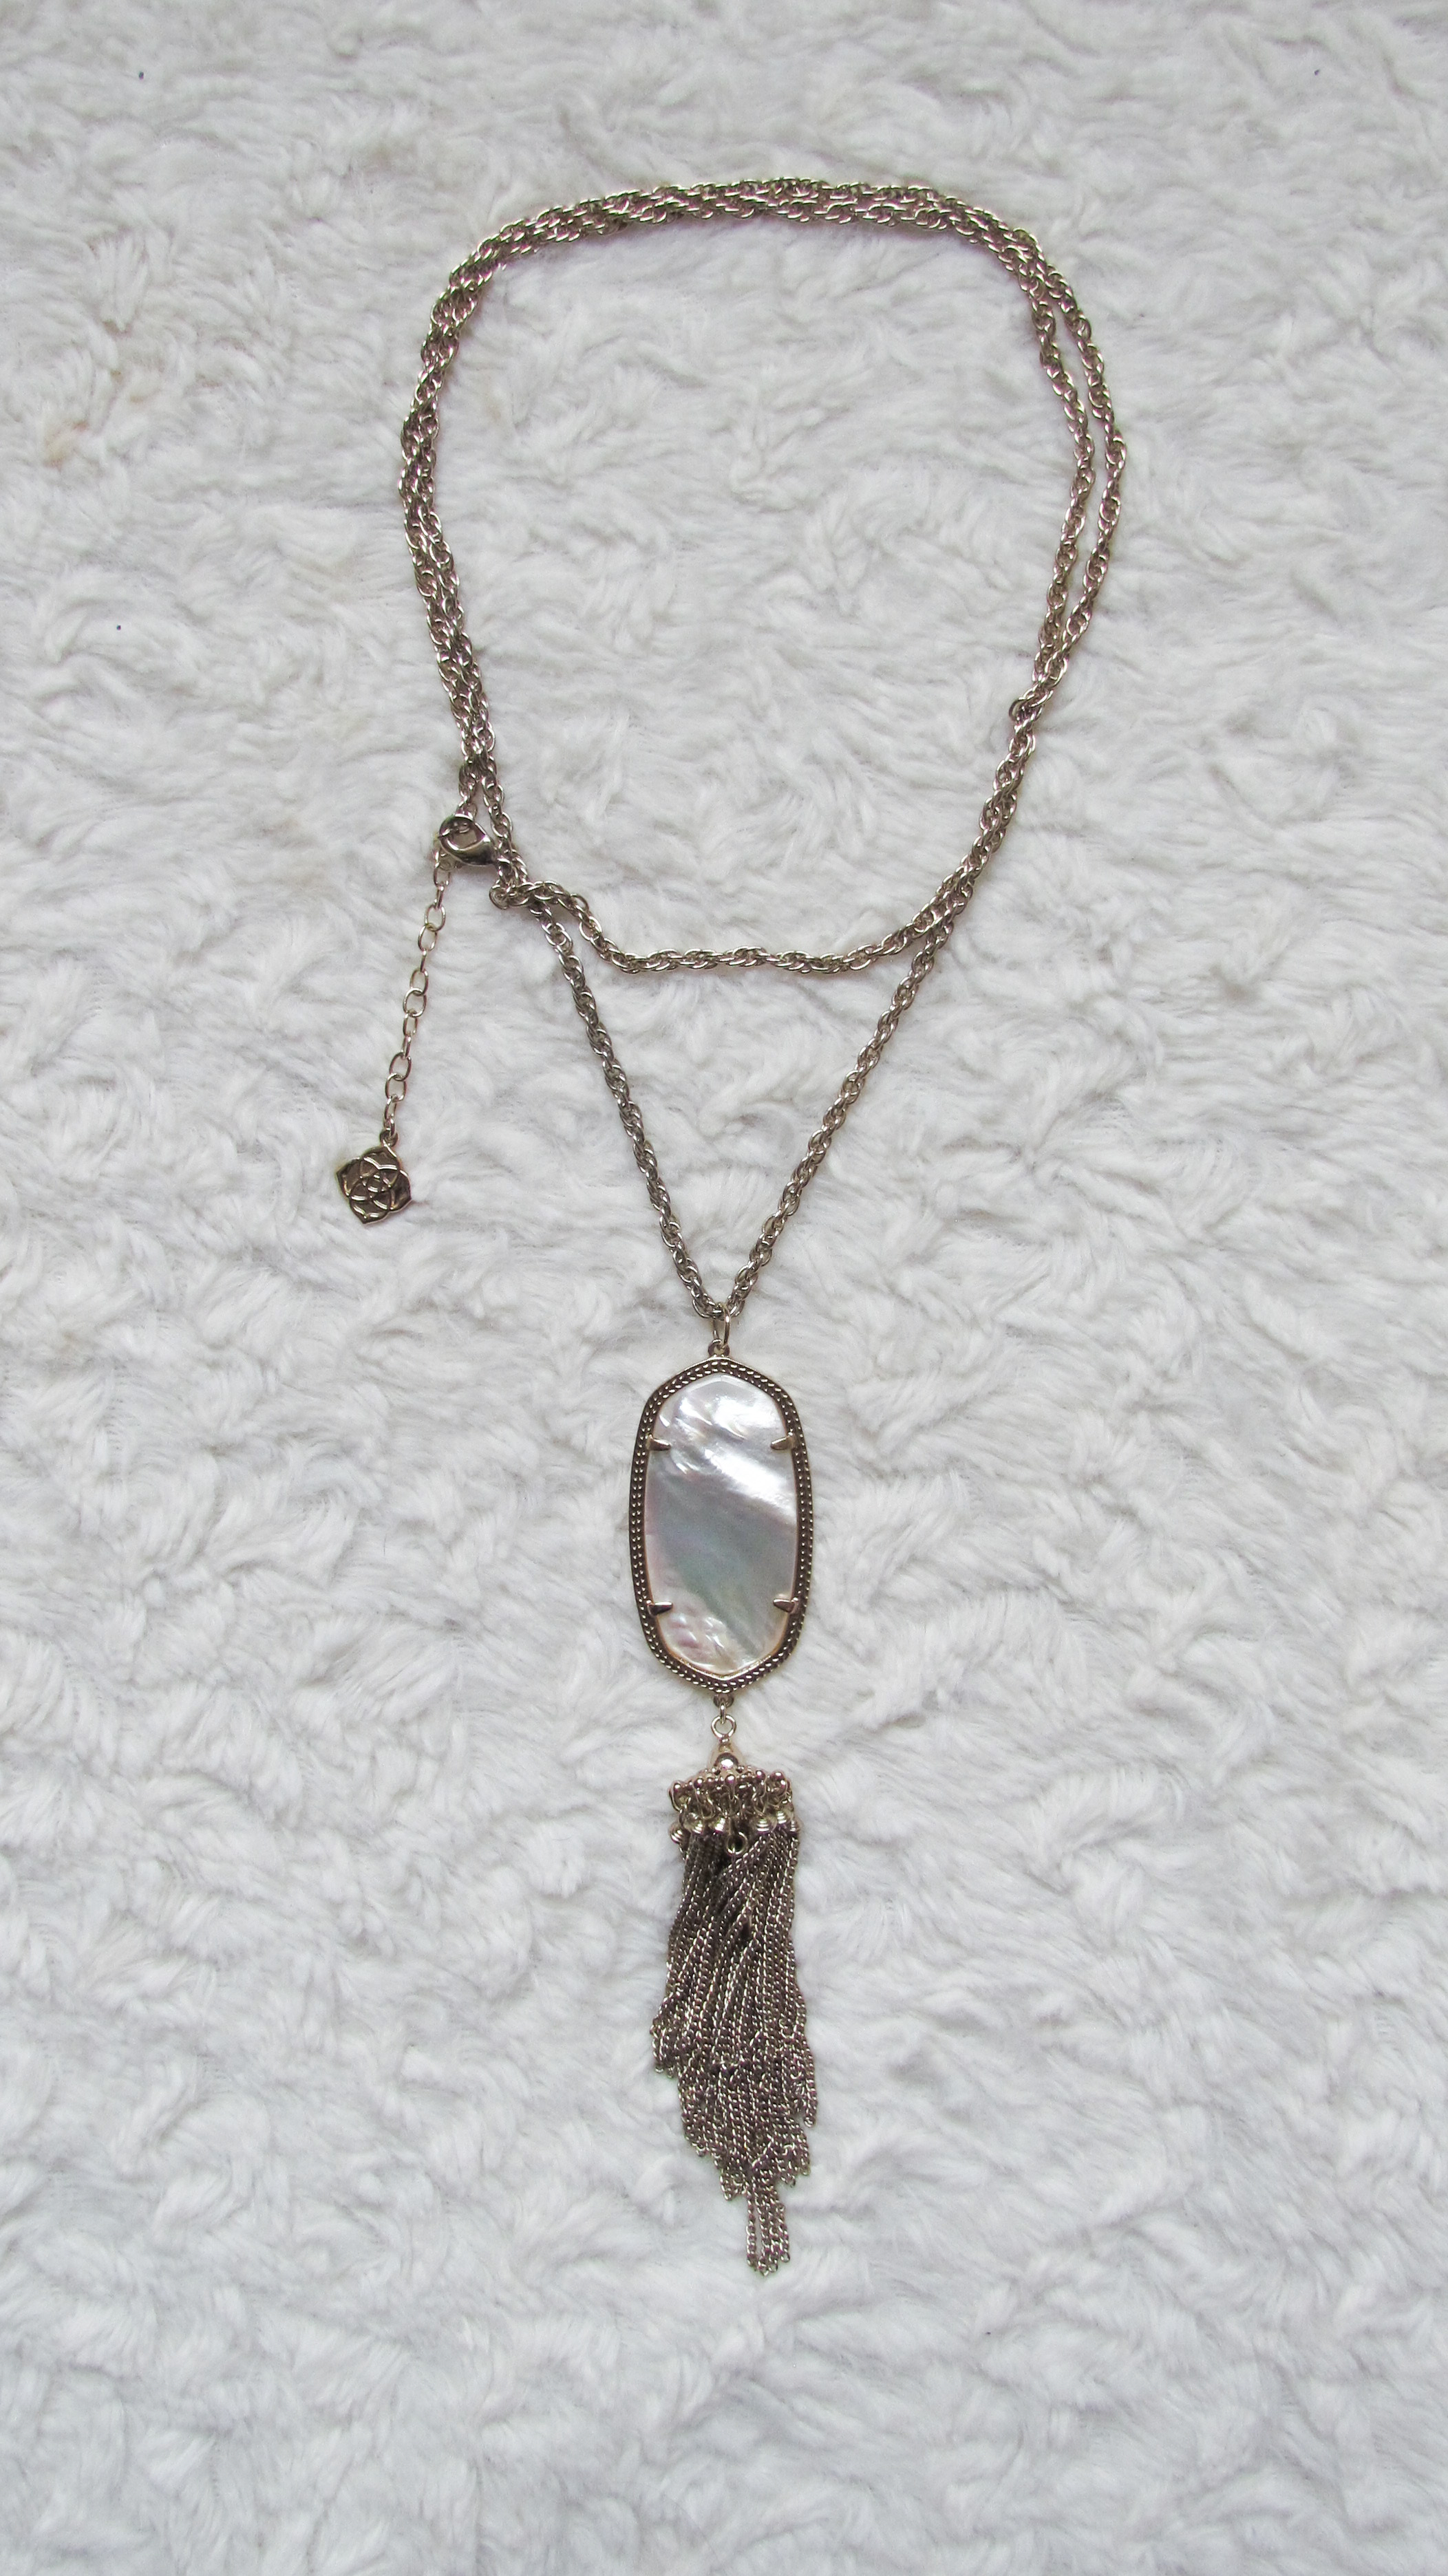 Kendra Scott Rayne Necklace in ivory pearl - April Rocksbox - Southern New Yorker